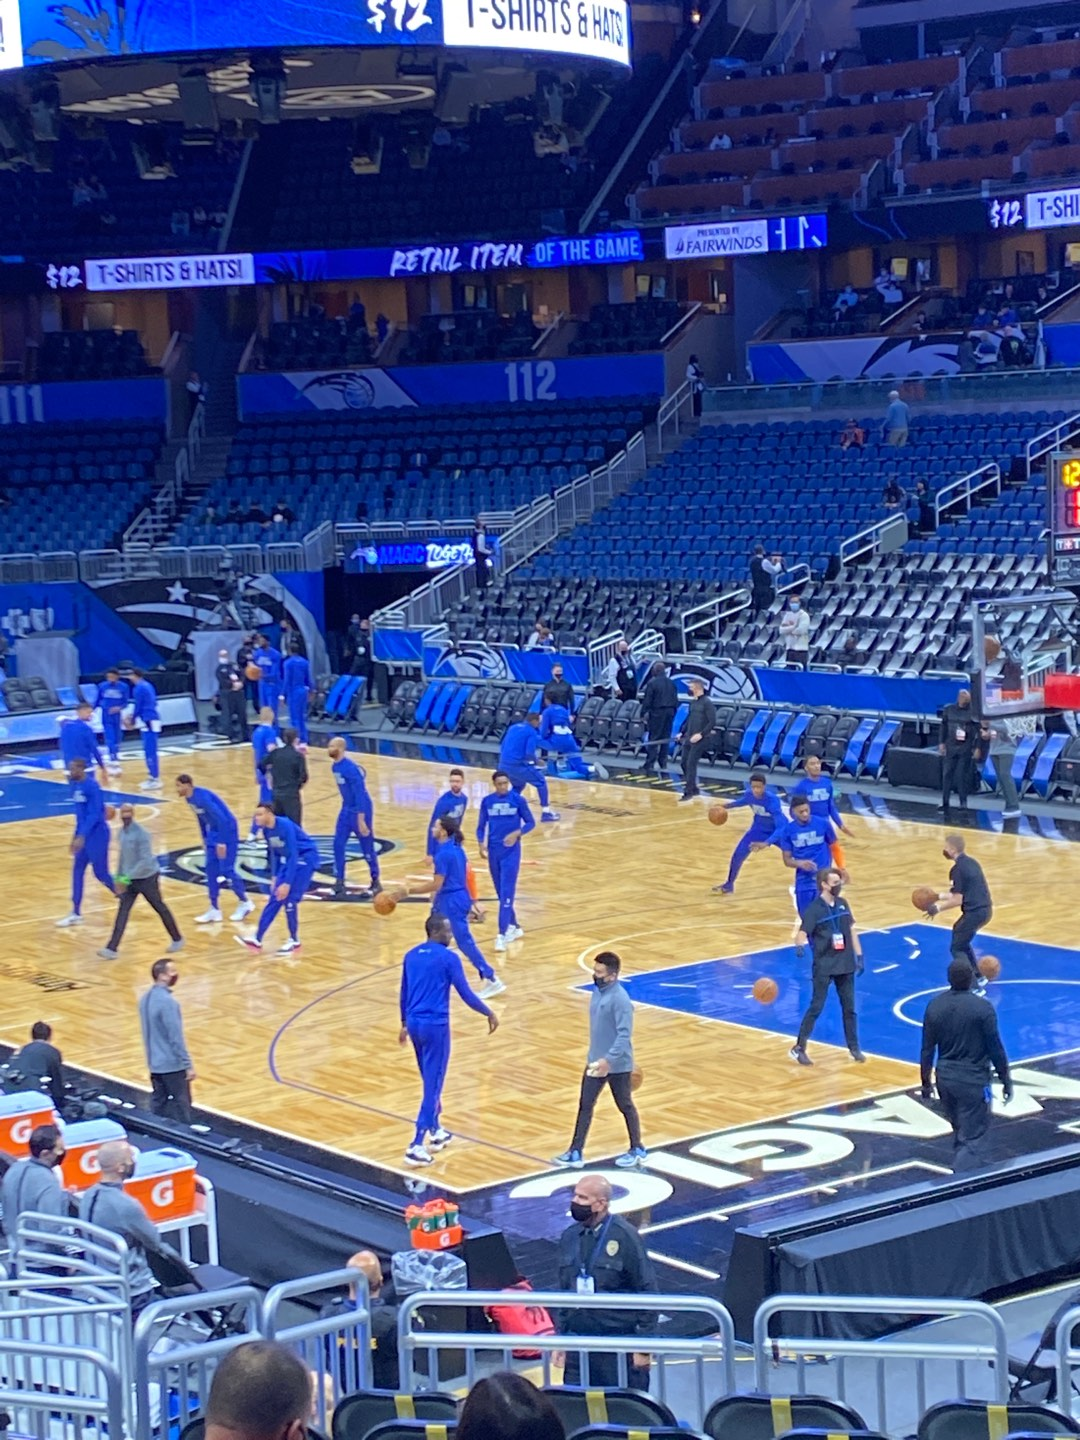 Amway Center Section 103 Row 17 Seat 4